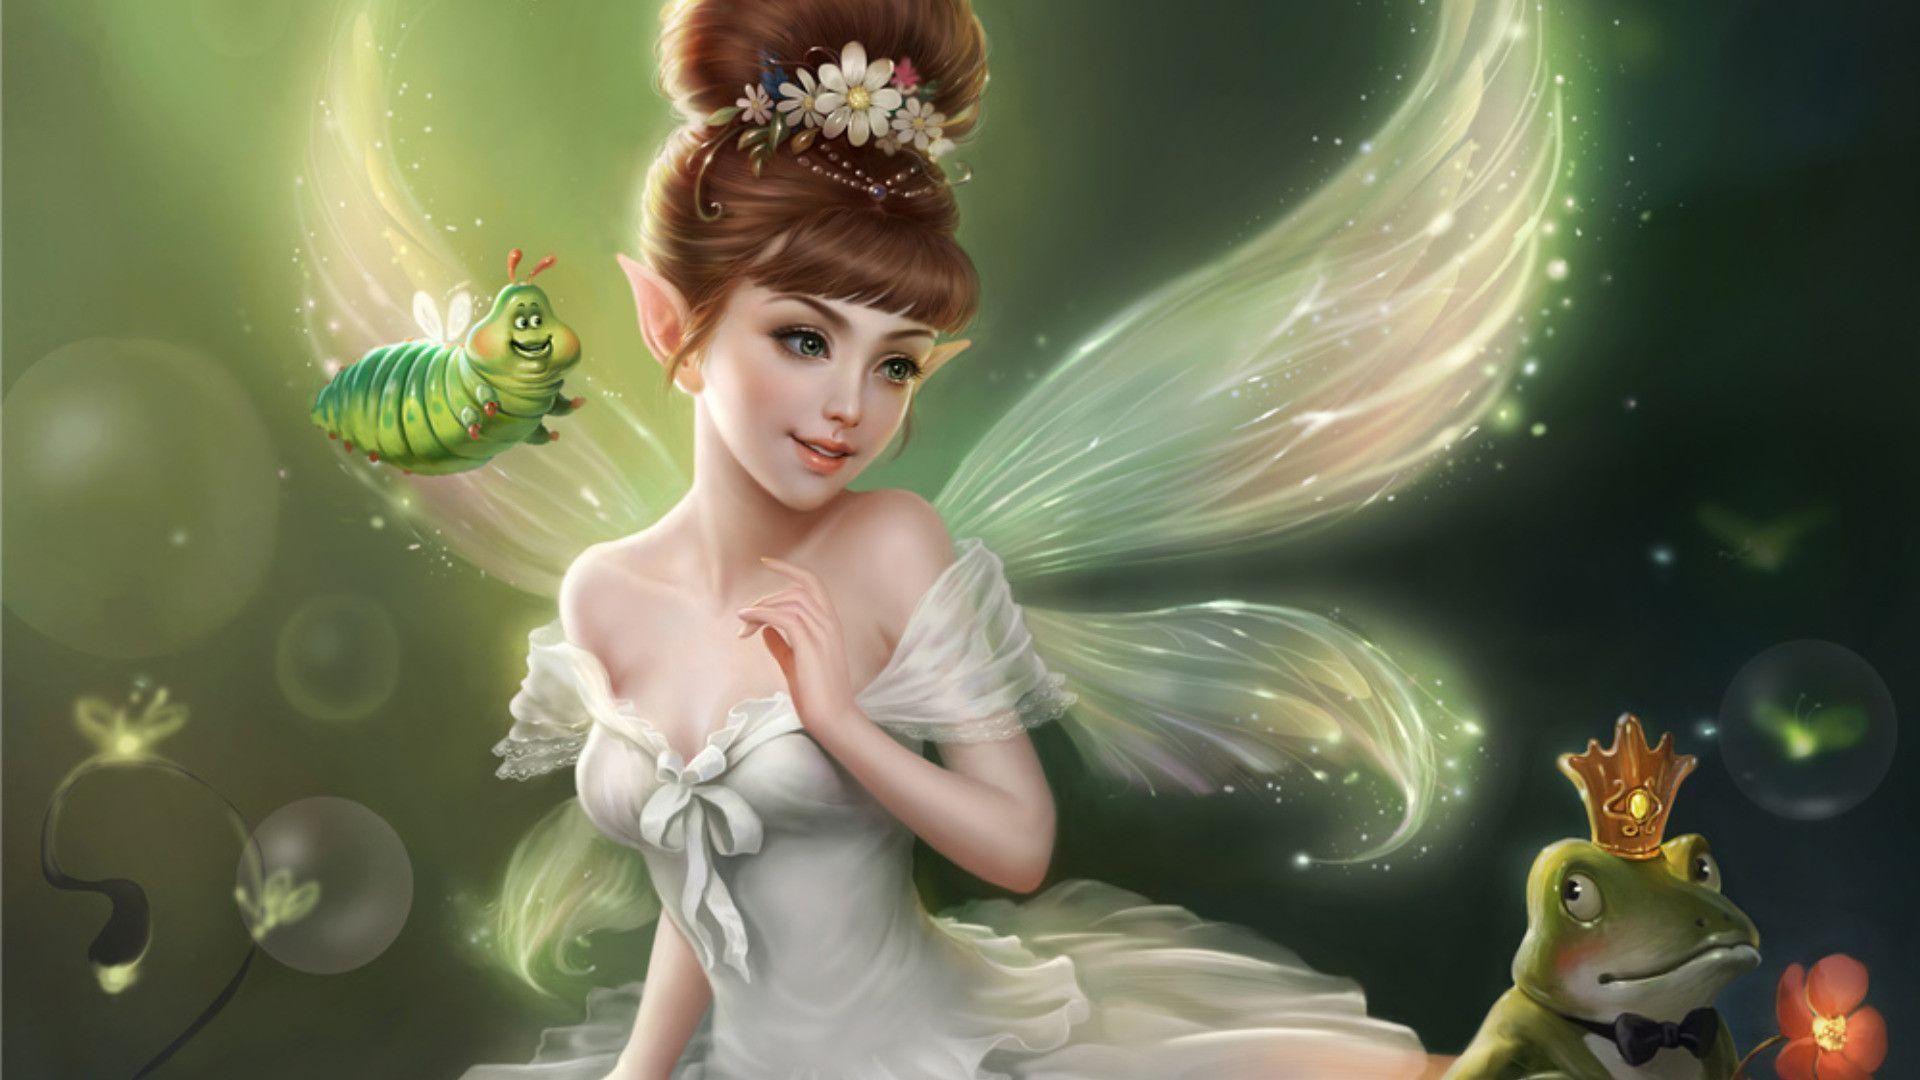 70 Hd Fairy Wallpapers on WallpaperPlay 1920x1080